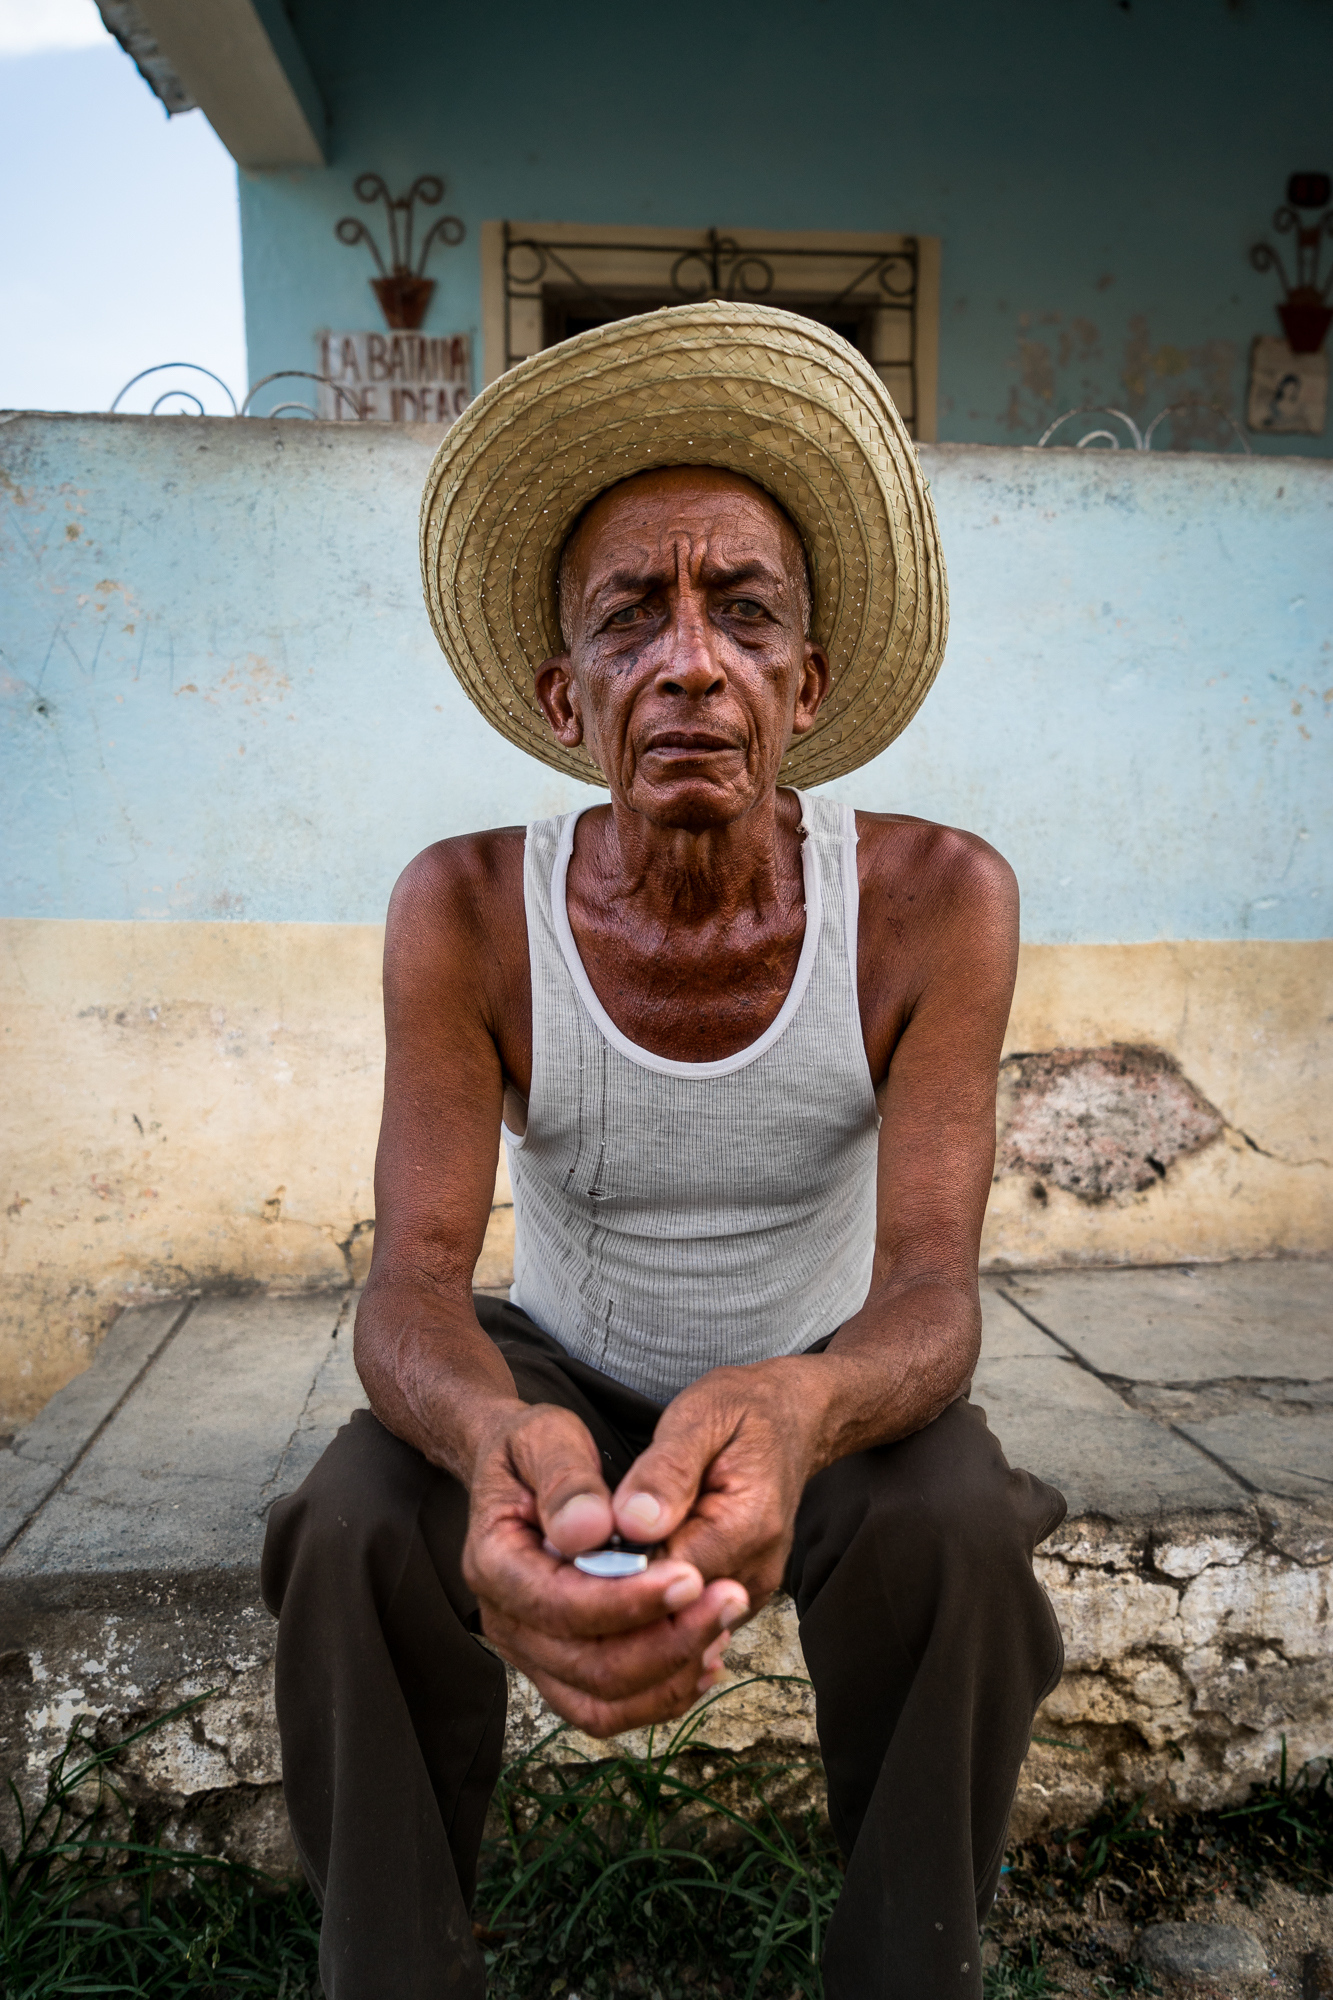 Portrait of Man in Hat, Trinidad, Cuba